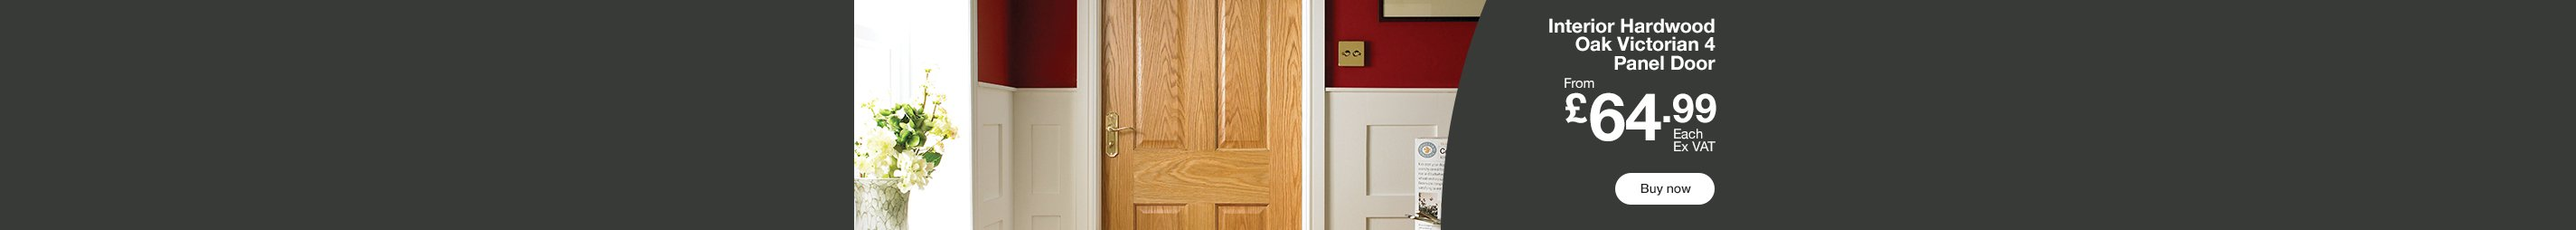 Interior Hardwood Doors £64.99